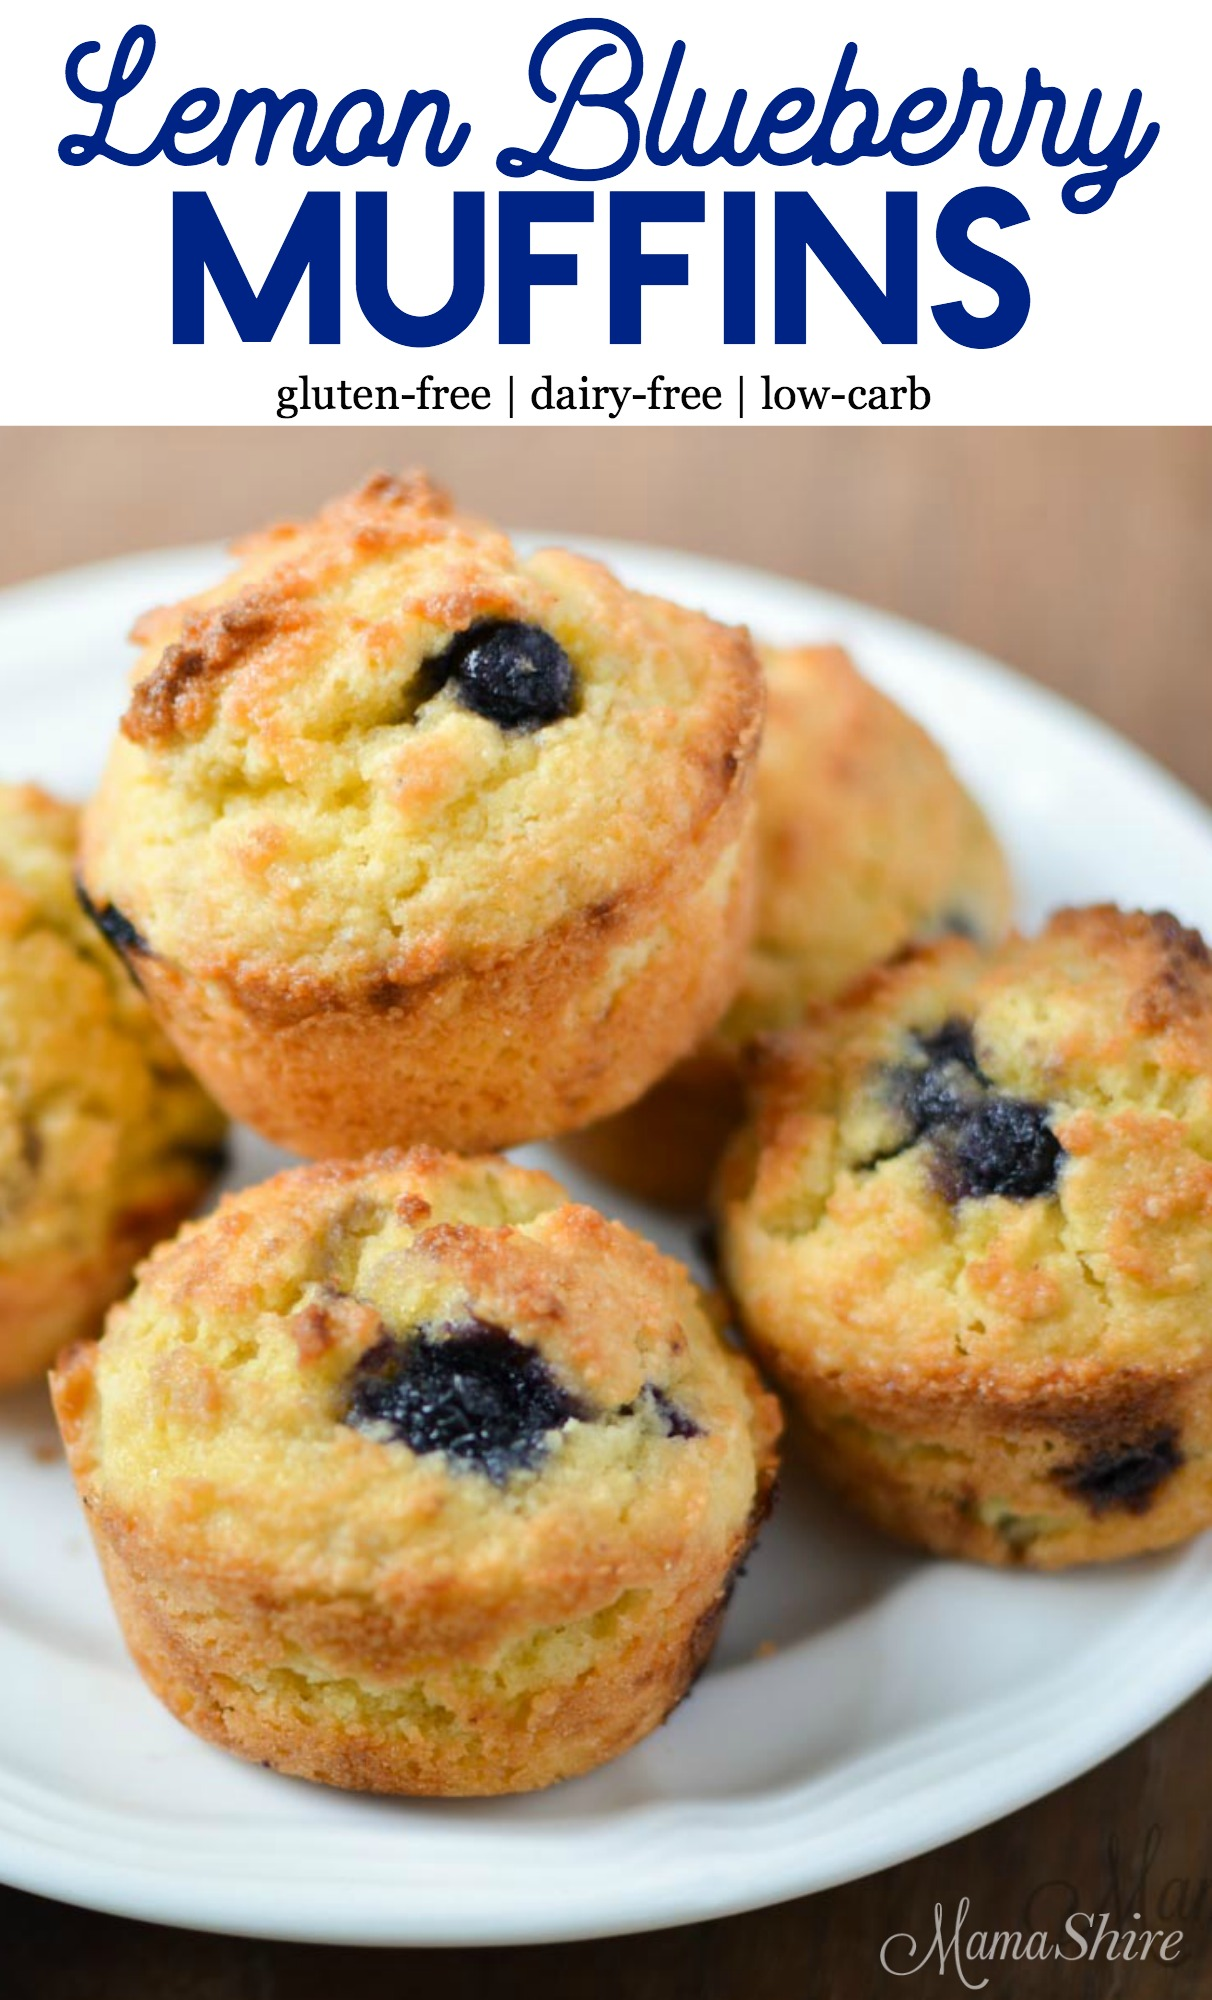 Lemon Blueberry Muffins on a plate.